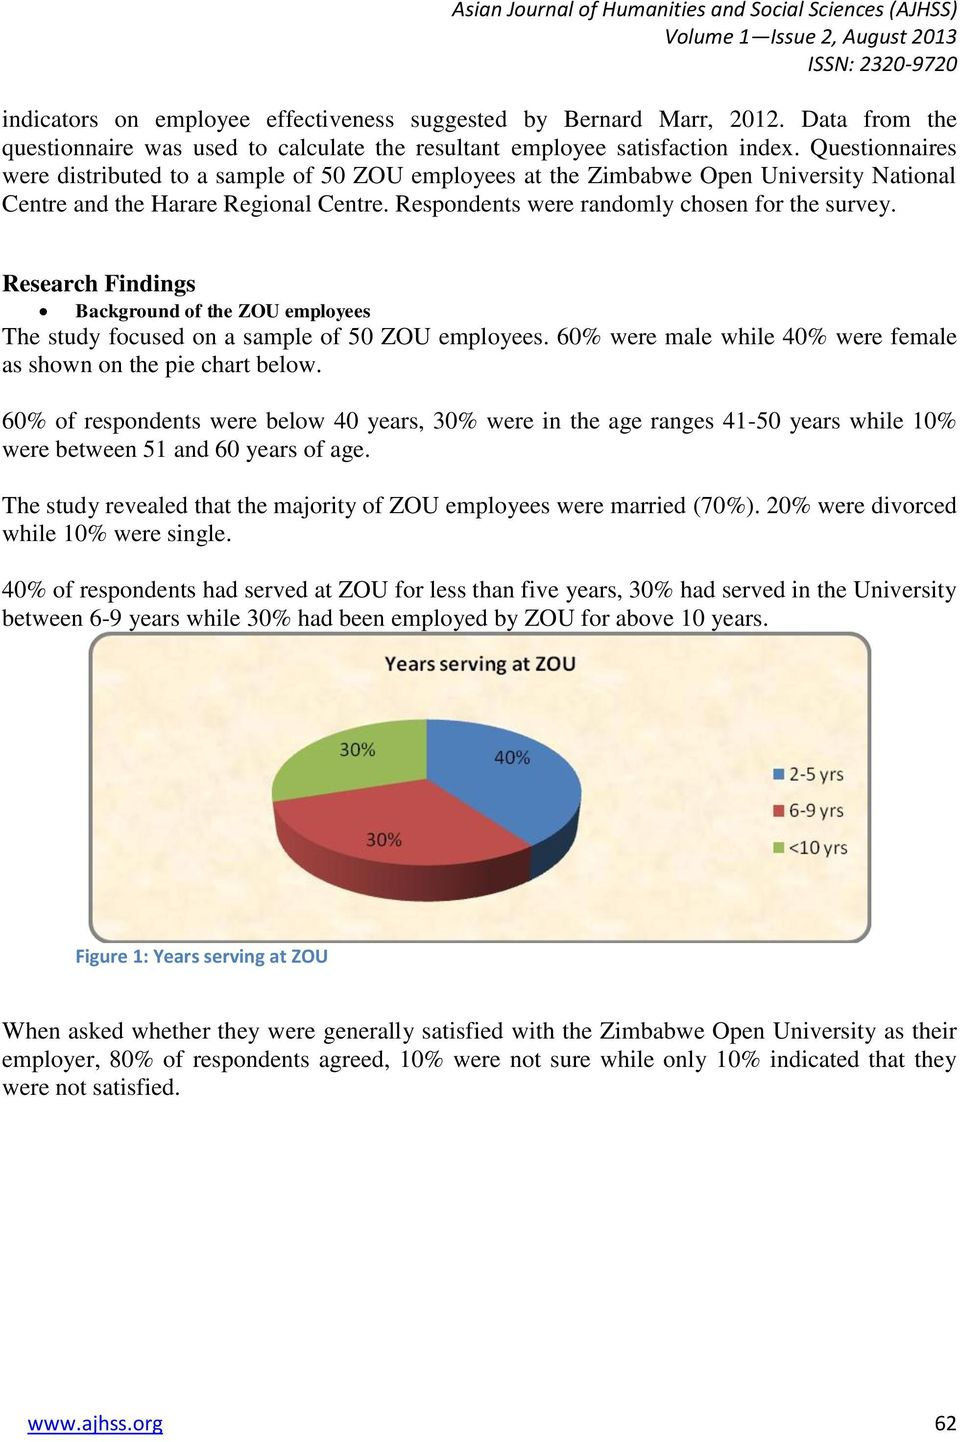 Research Findings Background of the ZOU employees The study focused on a sample of 50 ZOU employees. 60% were male while 40% were female as shown on the pie chart below.